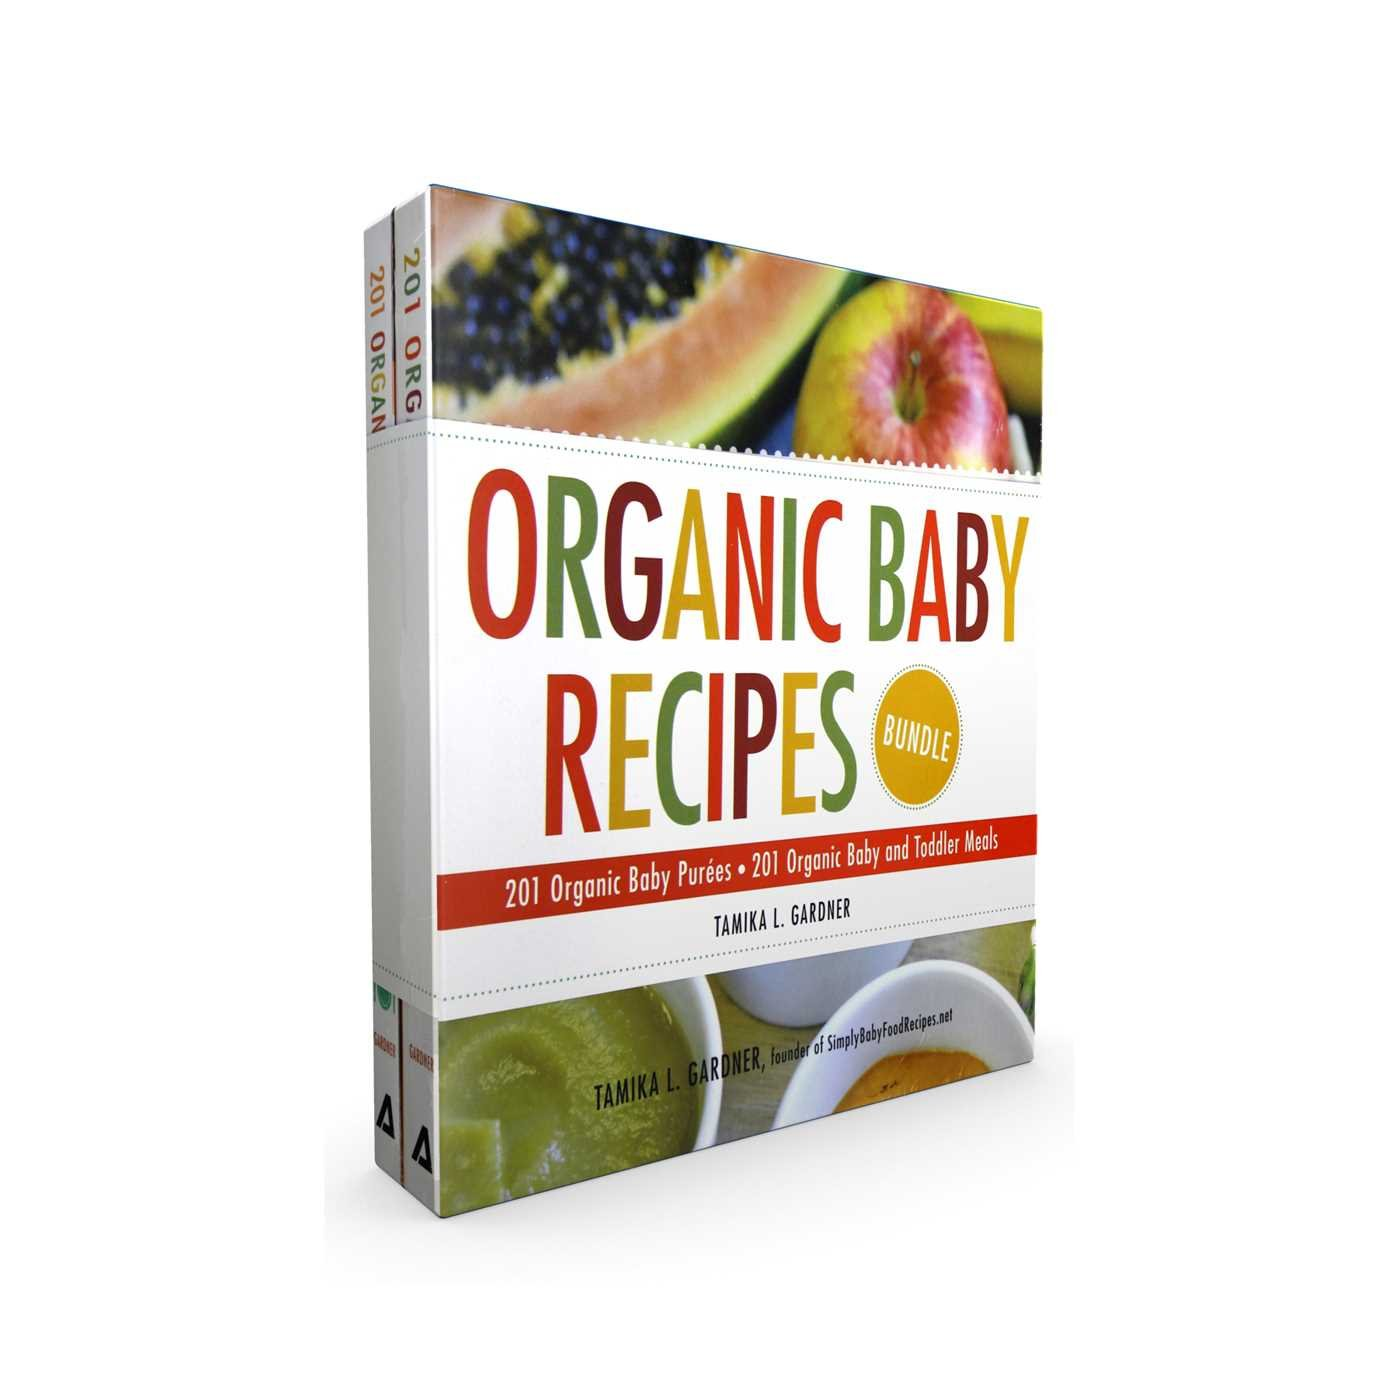 organic baby recipes bundle 201 organic baby pures 201 organic baby and toddler meals